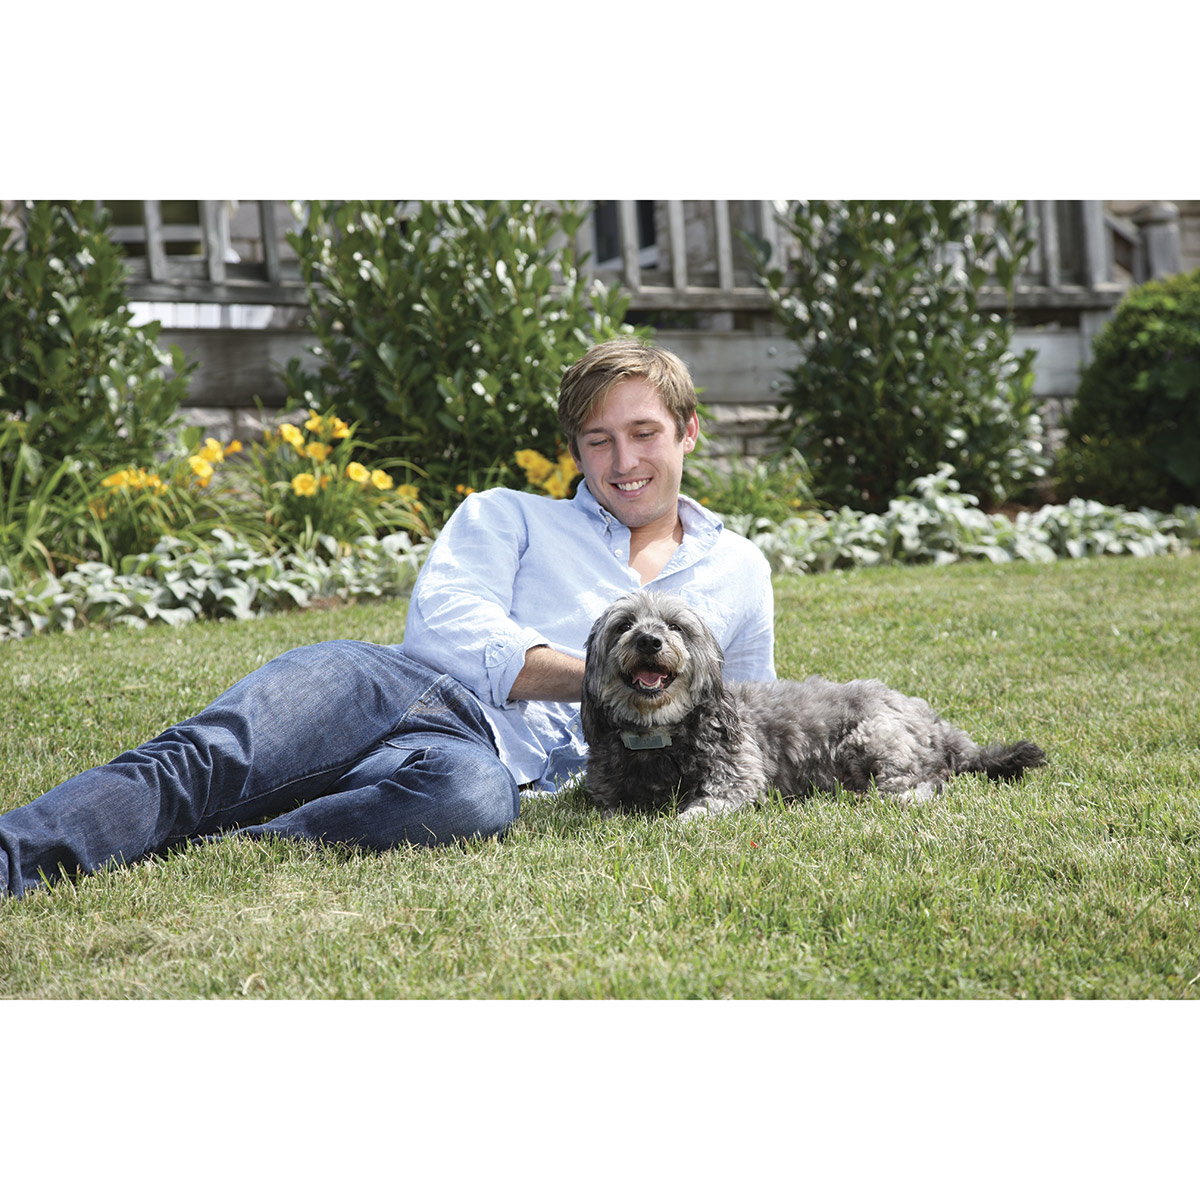 Man laying on Grass with PetSafe Ultrasonic Bark Control Collar on Dog - Both look happy